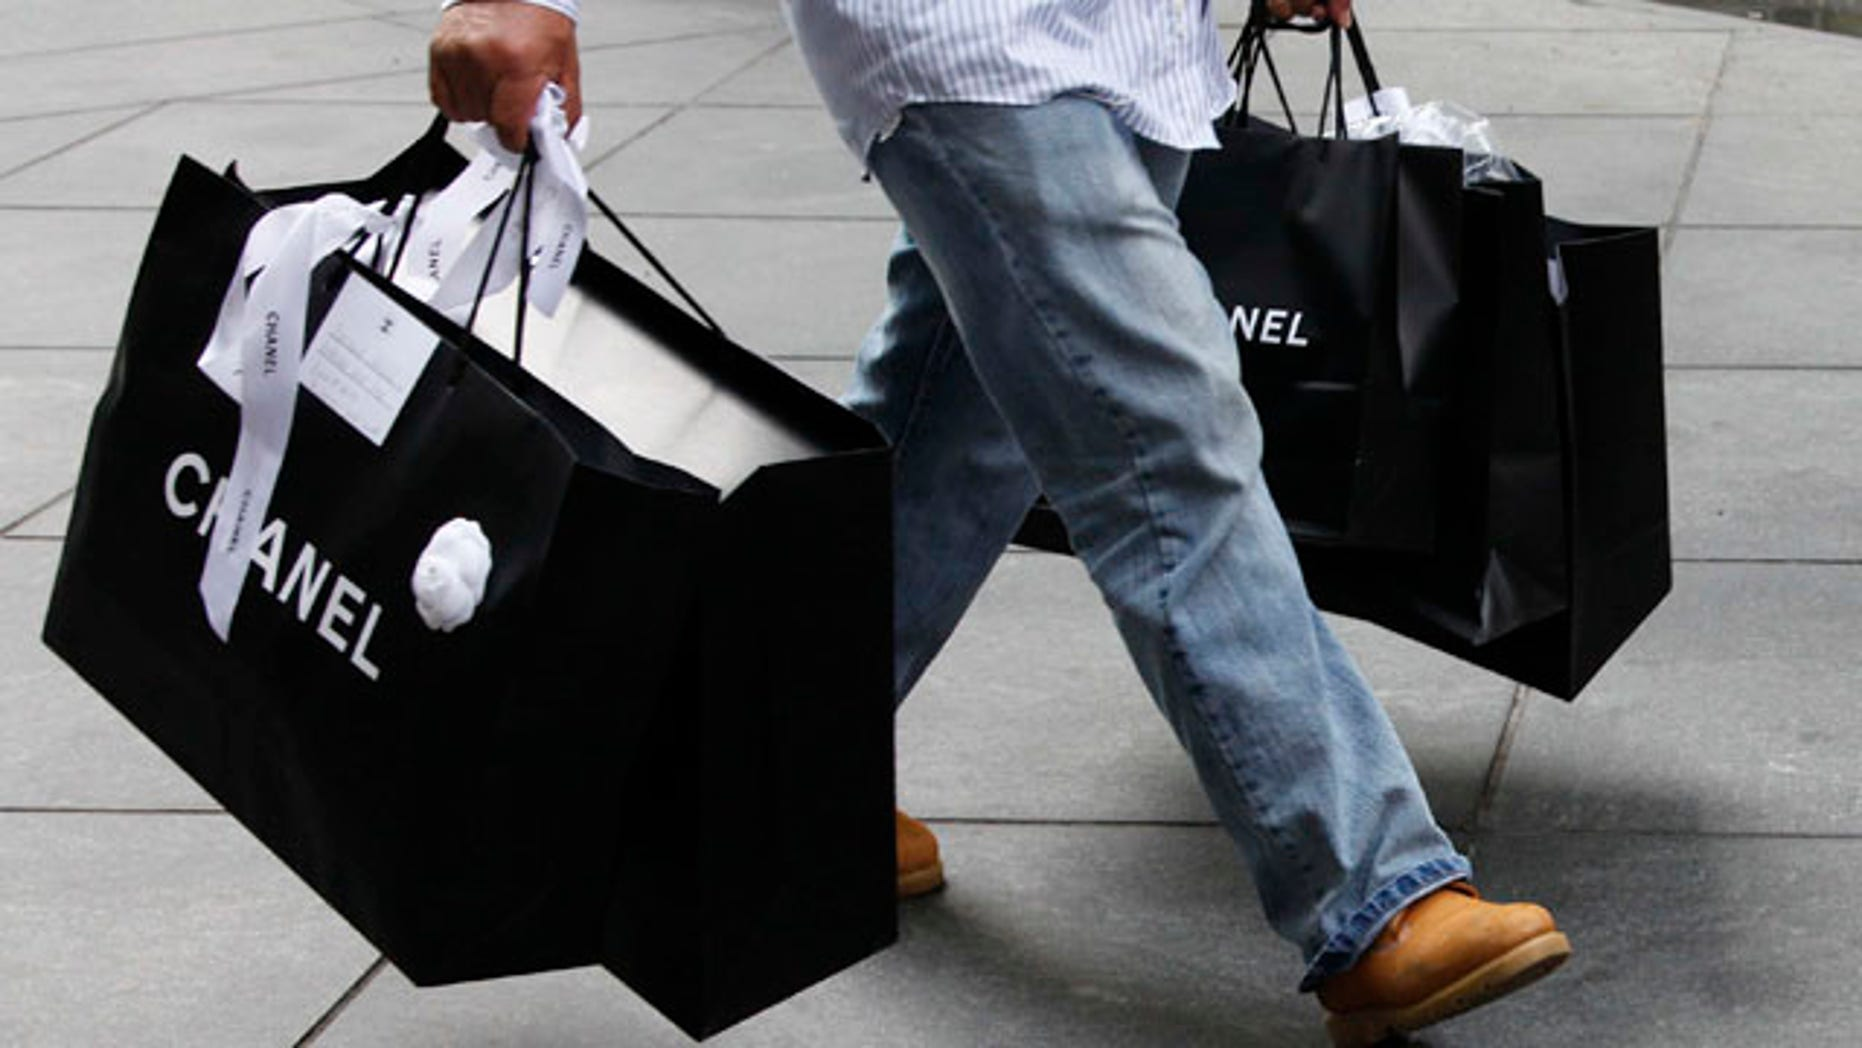 Oct. 25: A man carries Chanel shopping bags in New York. Retail sales increased in October by the largest amount since March, easing worries over the economic recovery.